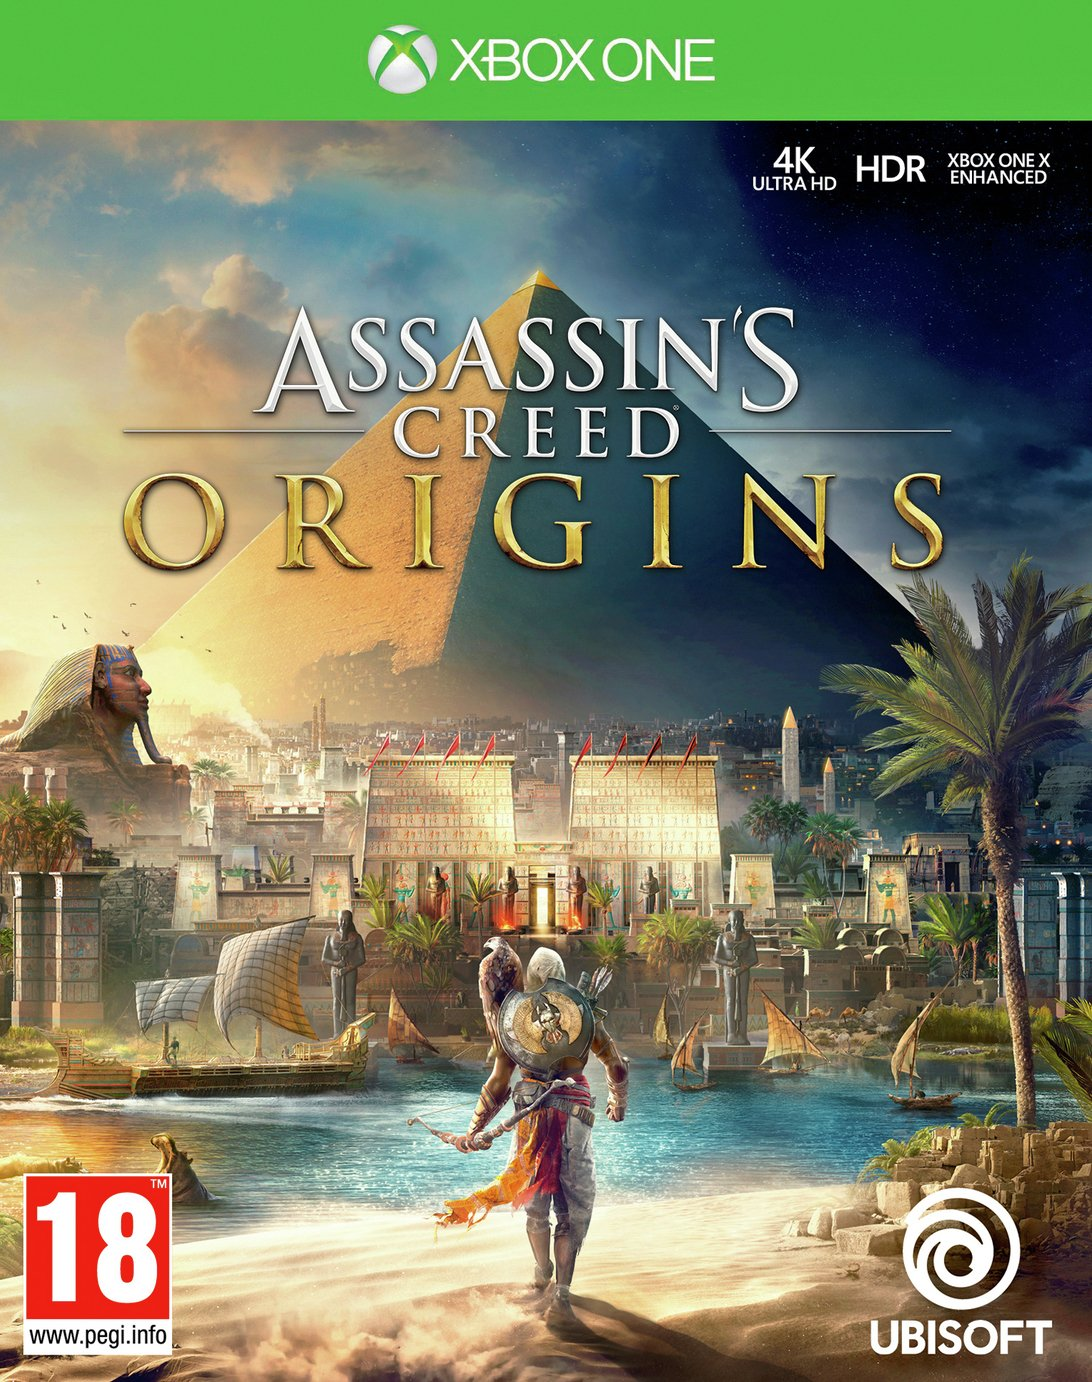 Image of Assassin's Creed Origins Xbox One Game.